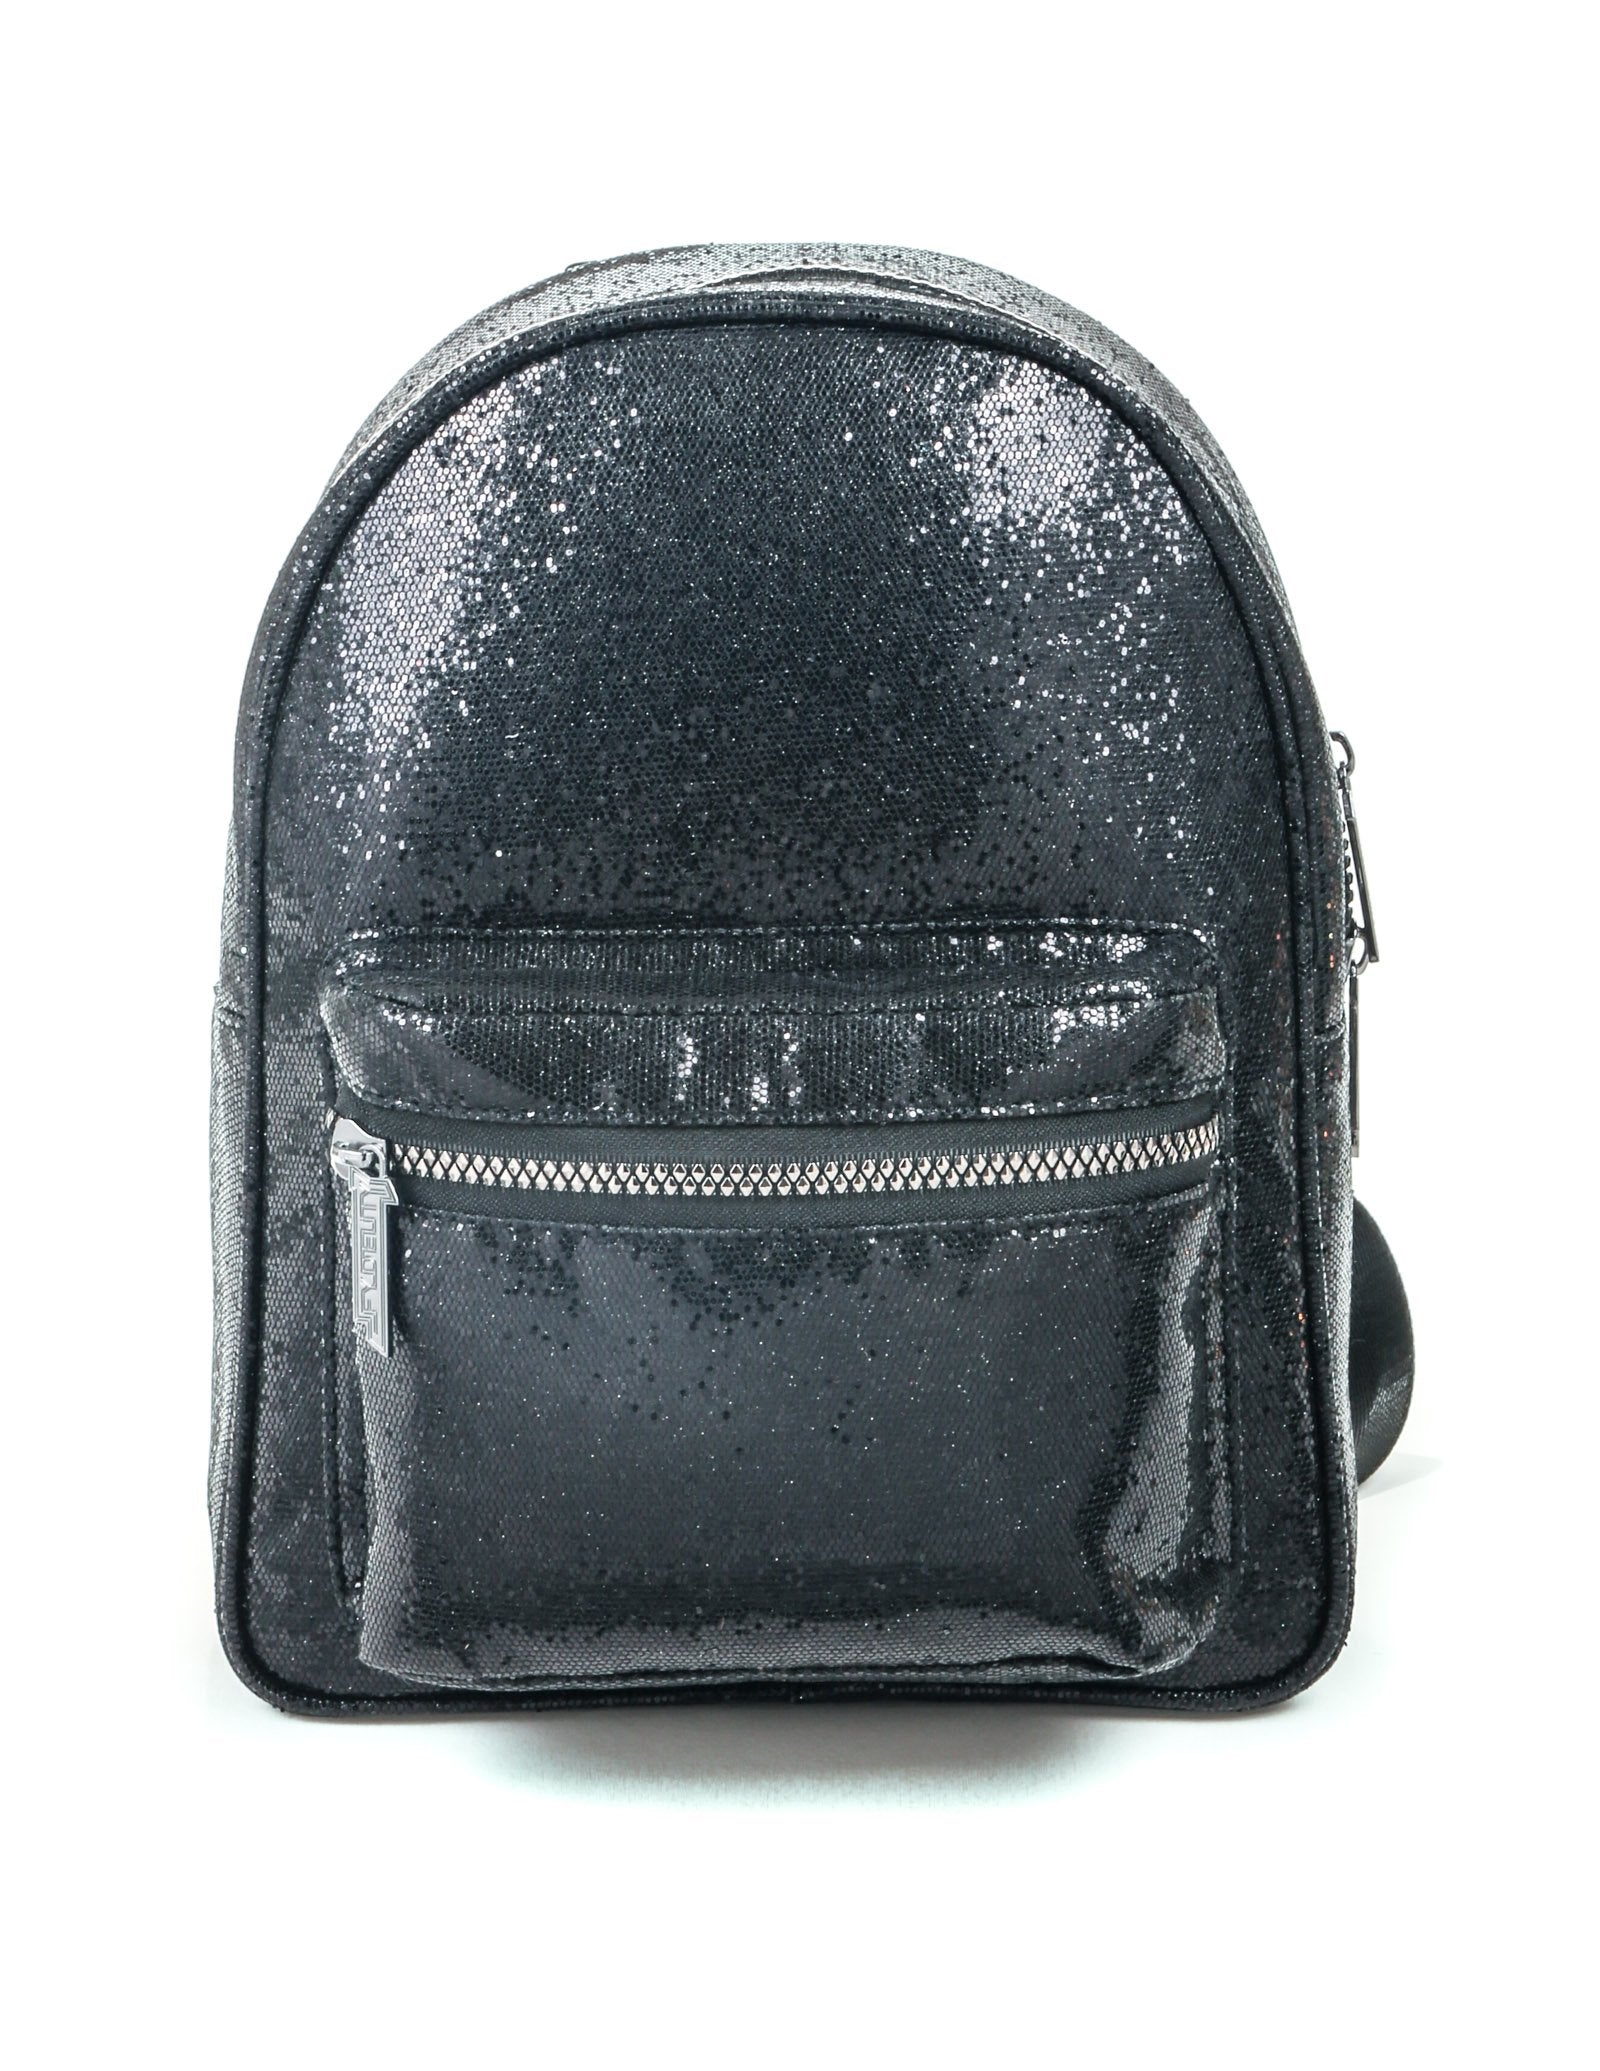 86236: FYDELITY- Mini Backpack: GLAM Black